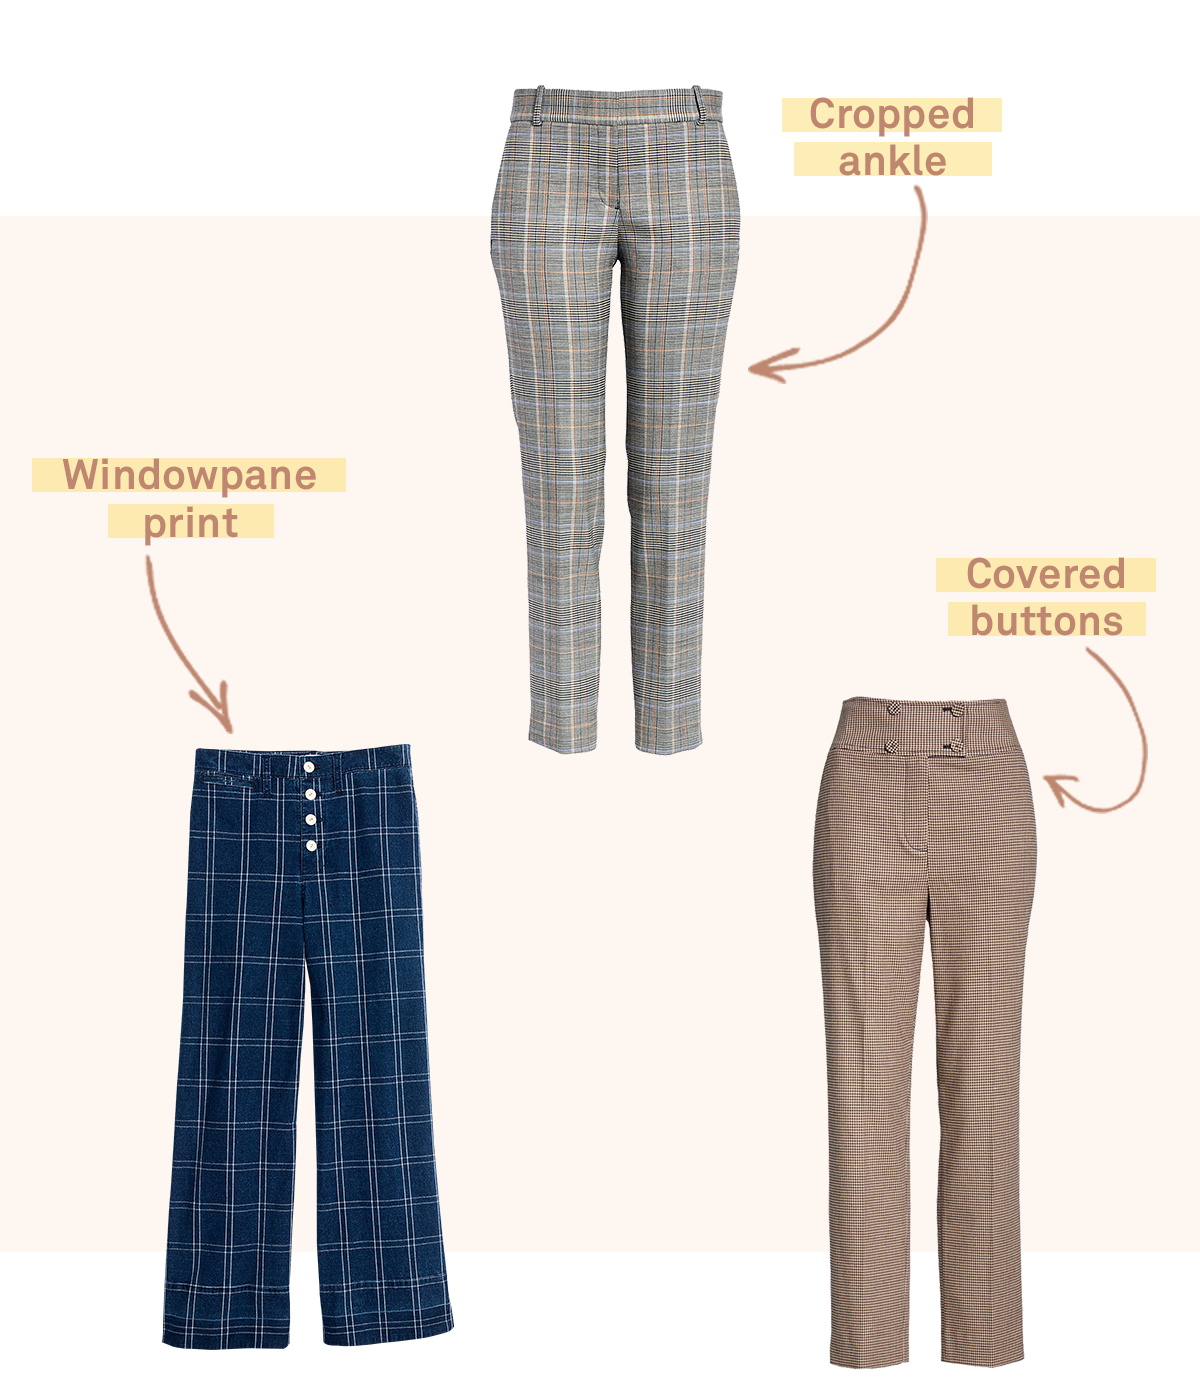 Three pairs of women's checked trousers in varying prints on a light pink background.